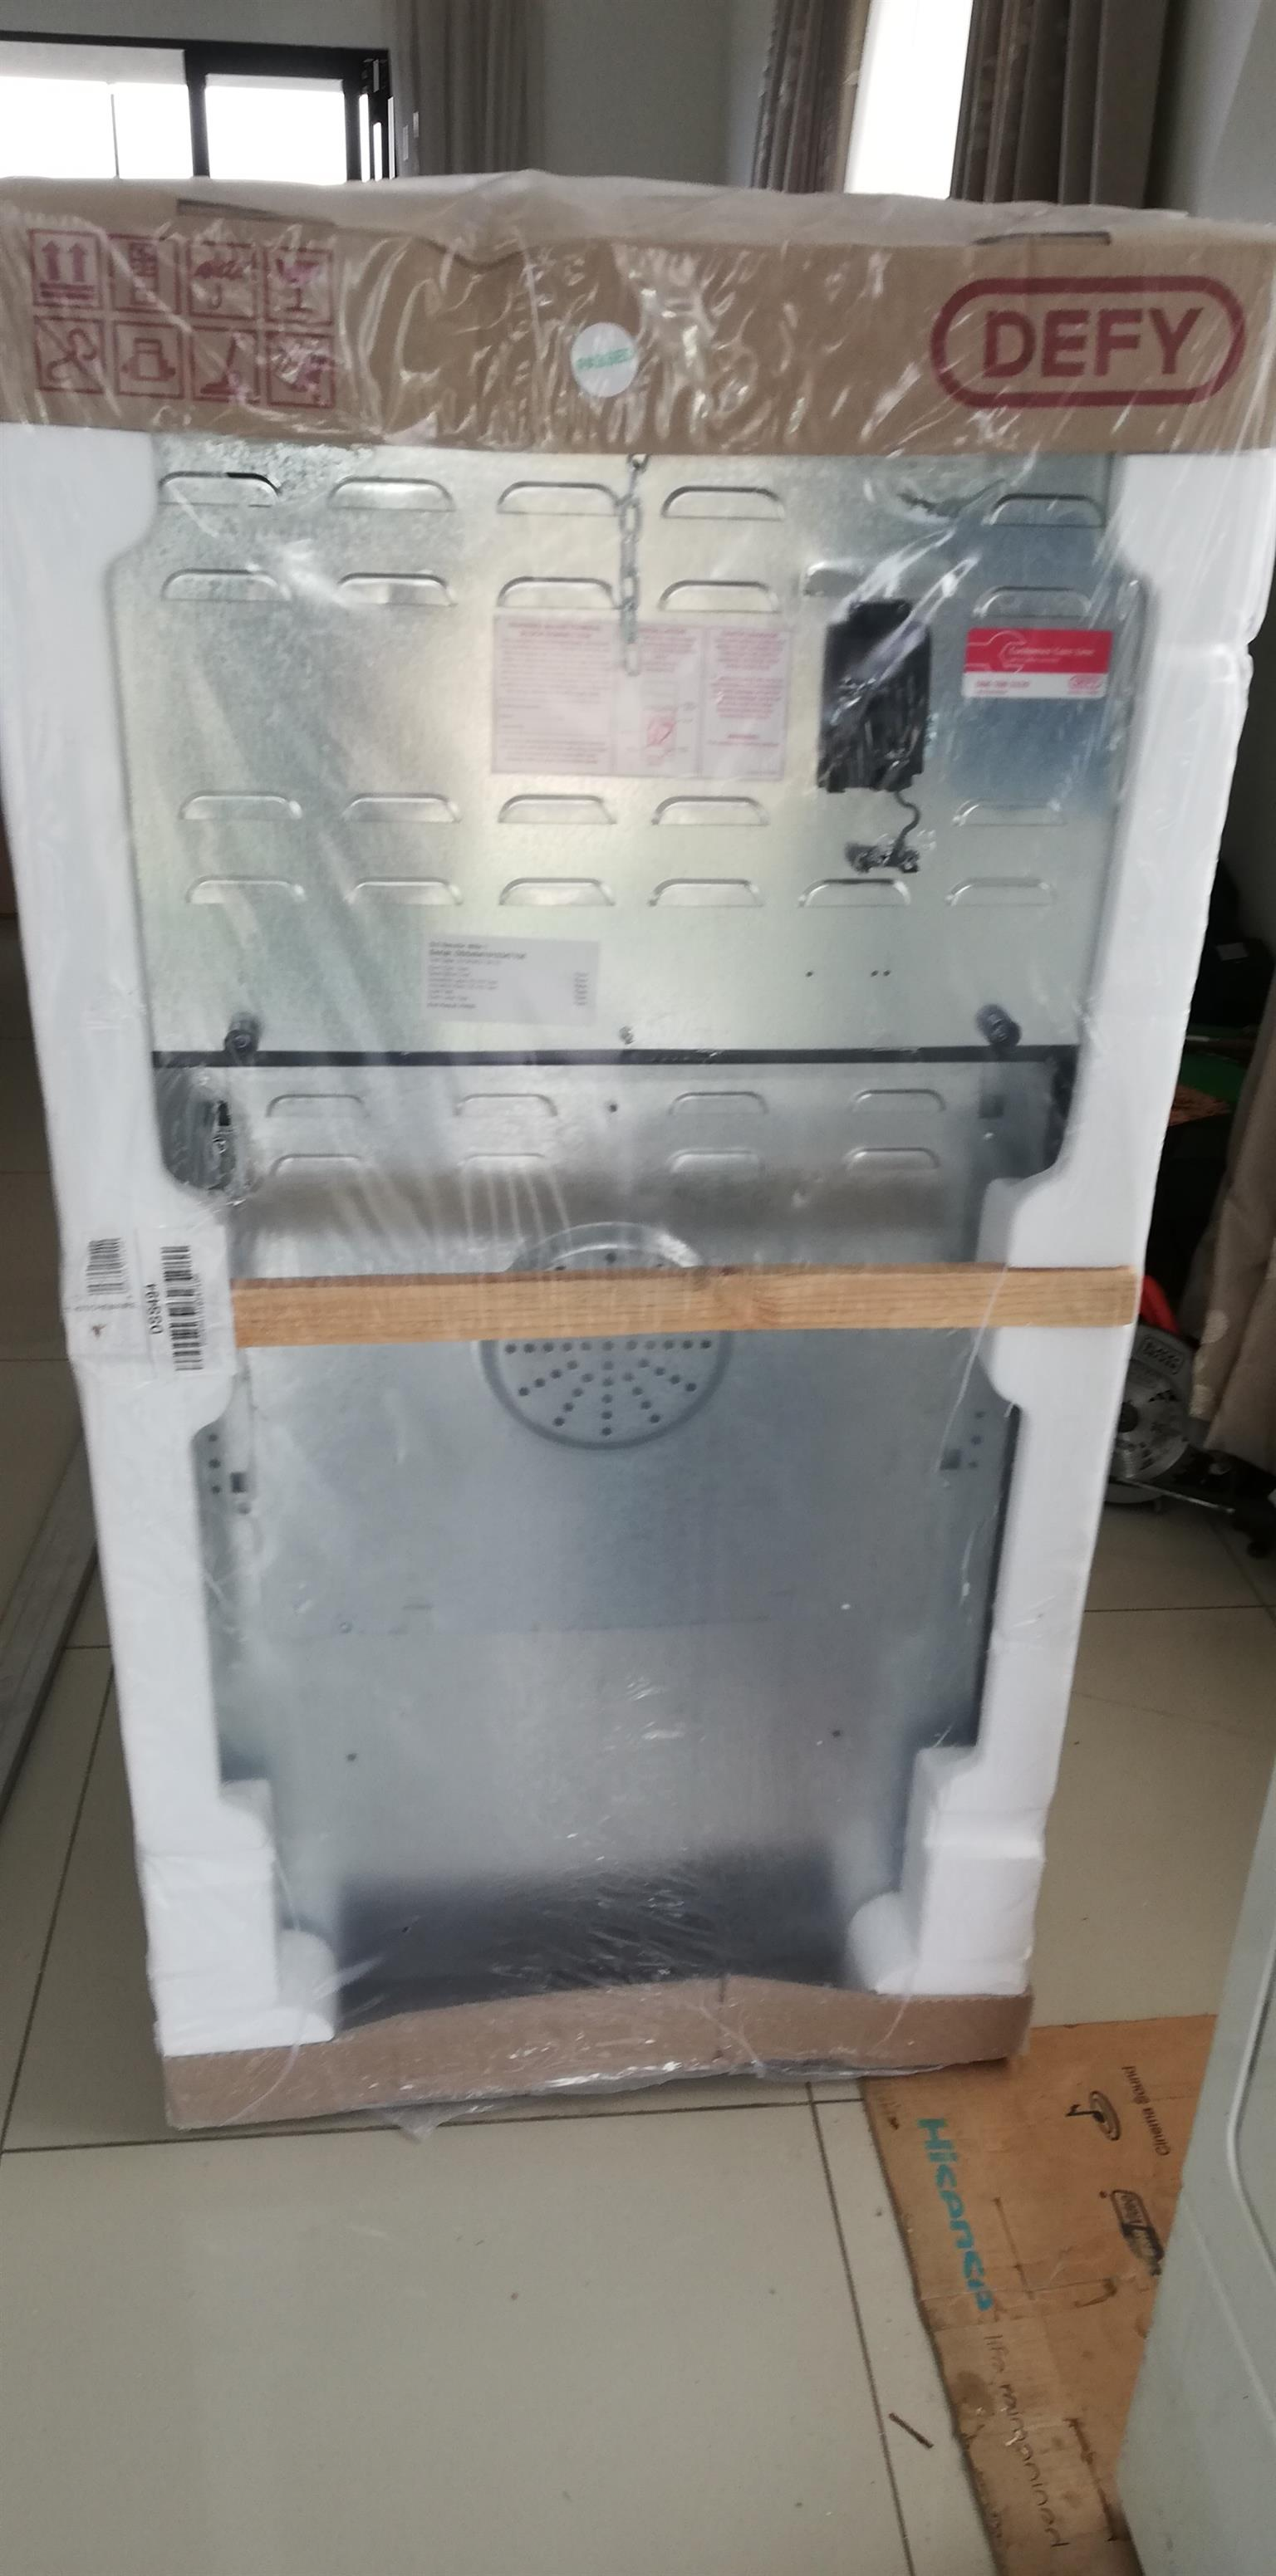 DEFY DSS494 621 4 PLATE ELECTRIC STOVE BRAND NEW WITH WARRANTY